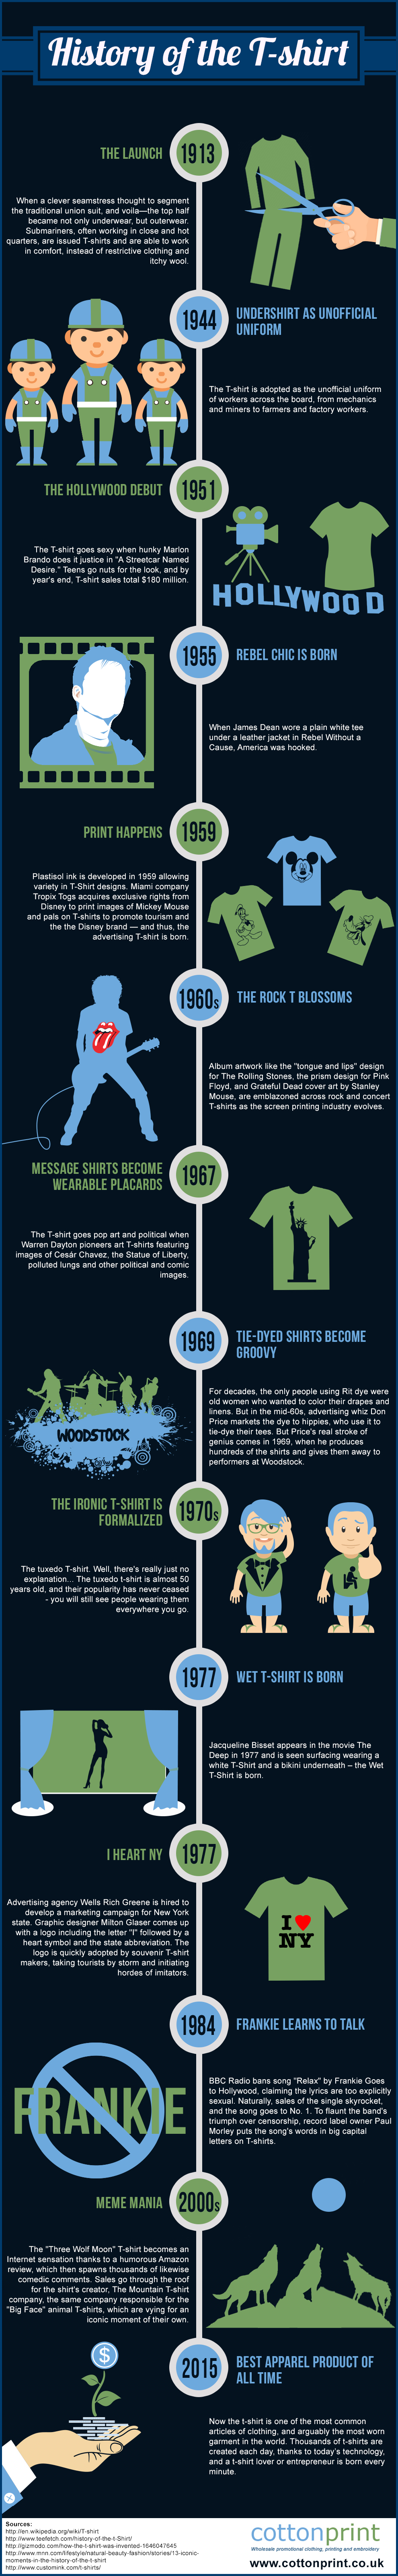 History-of-the-T-shirt.jpg